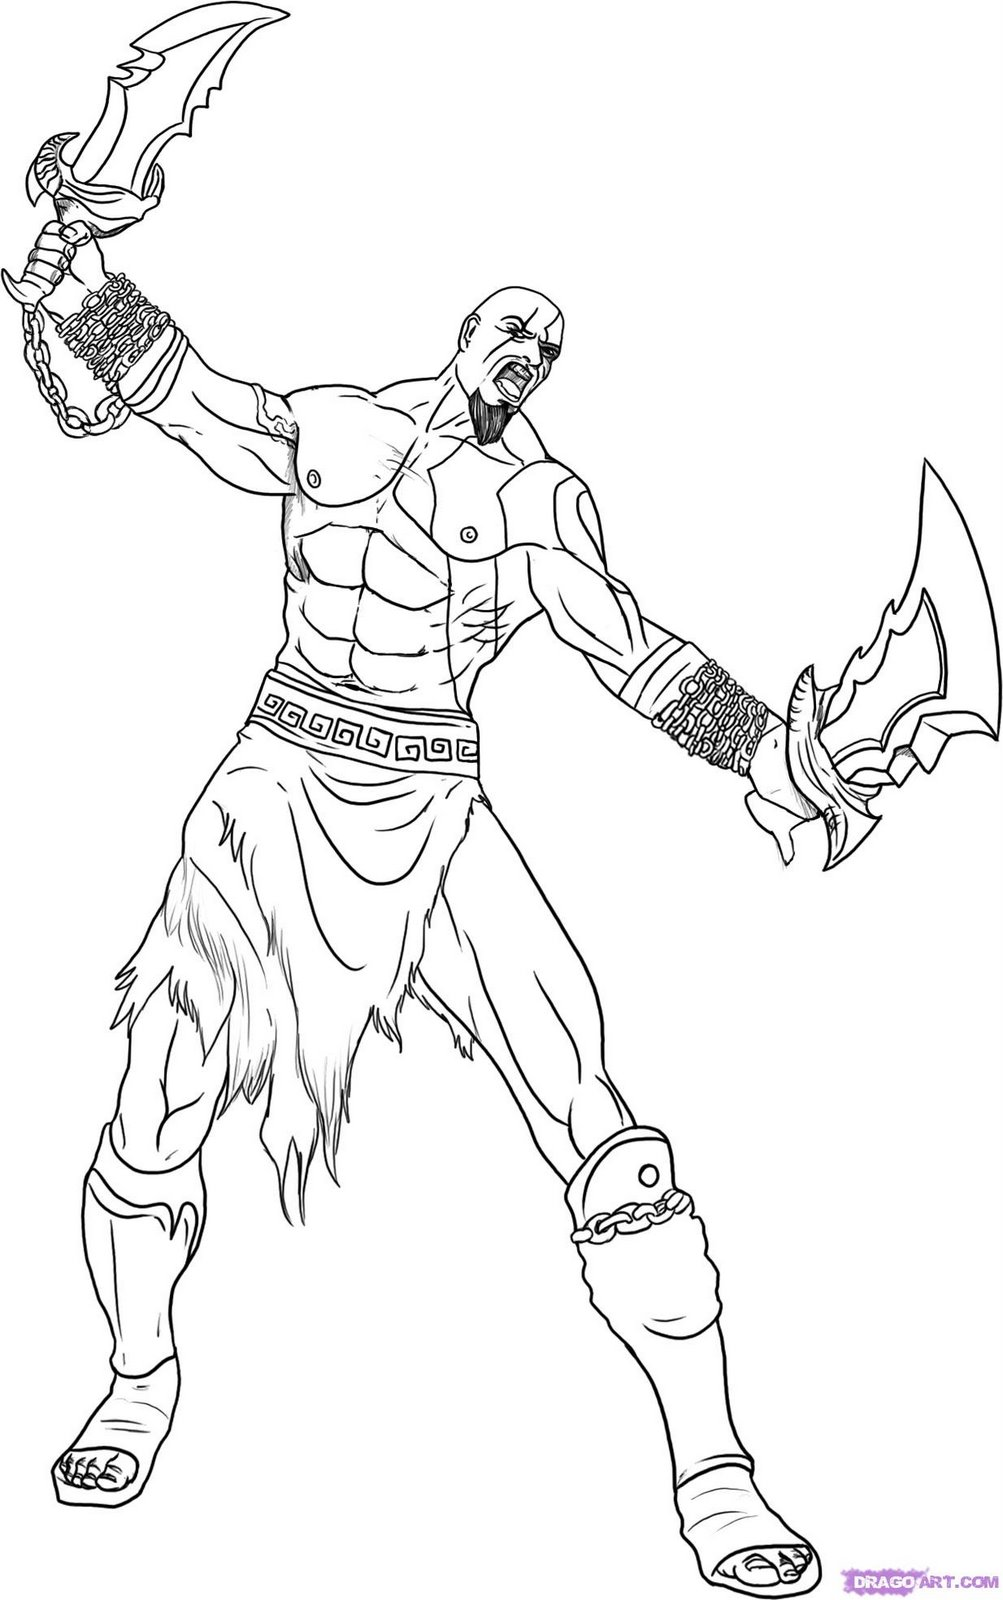 How To Draw Kratos From God Of War Step 6